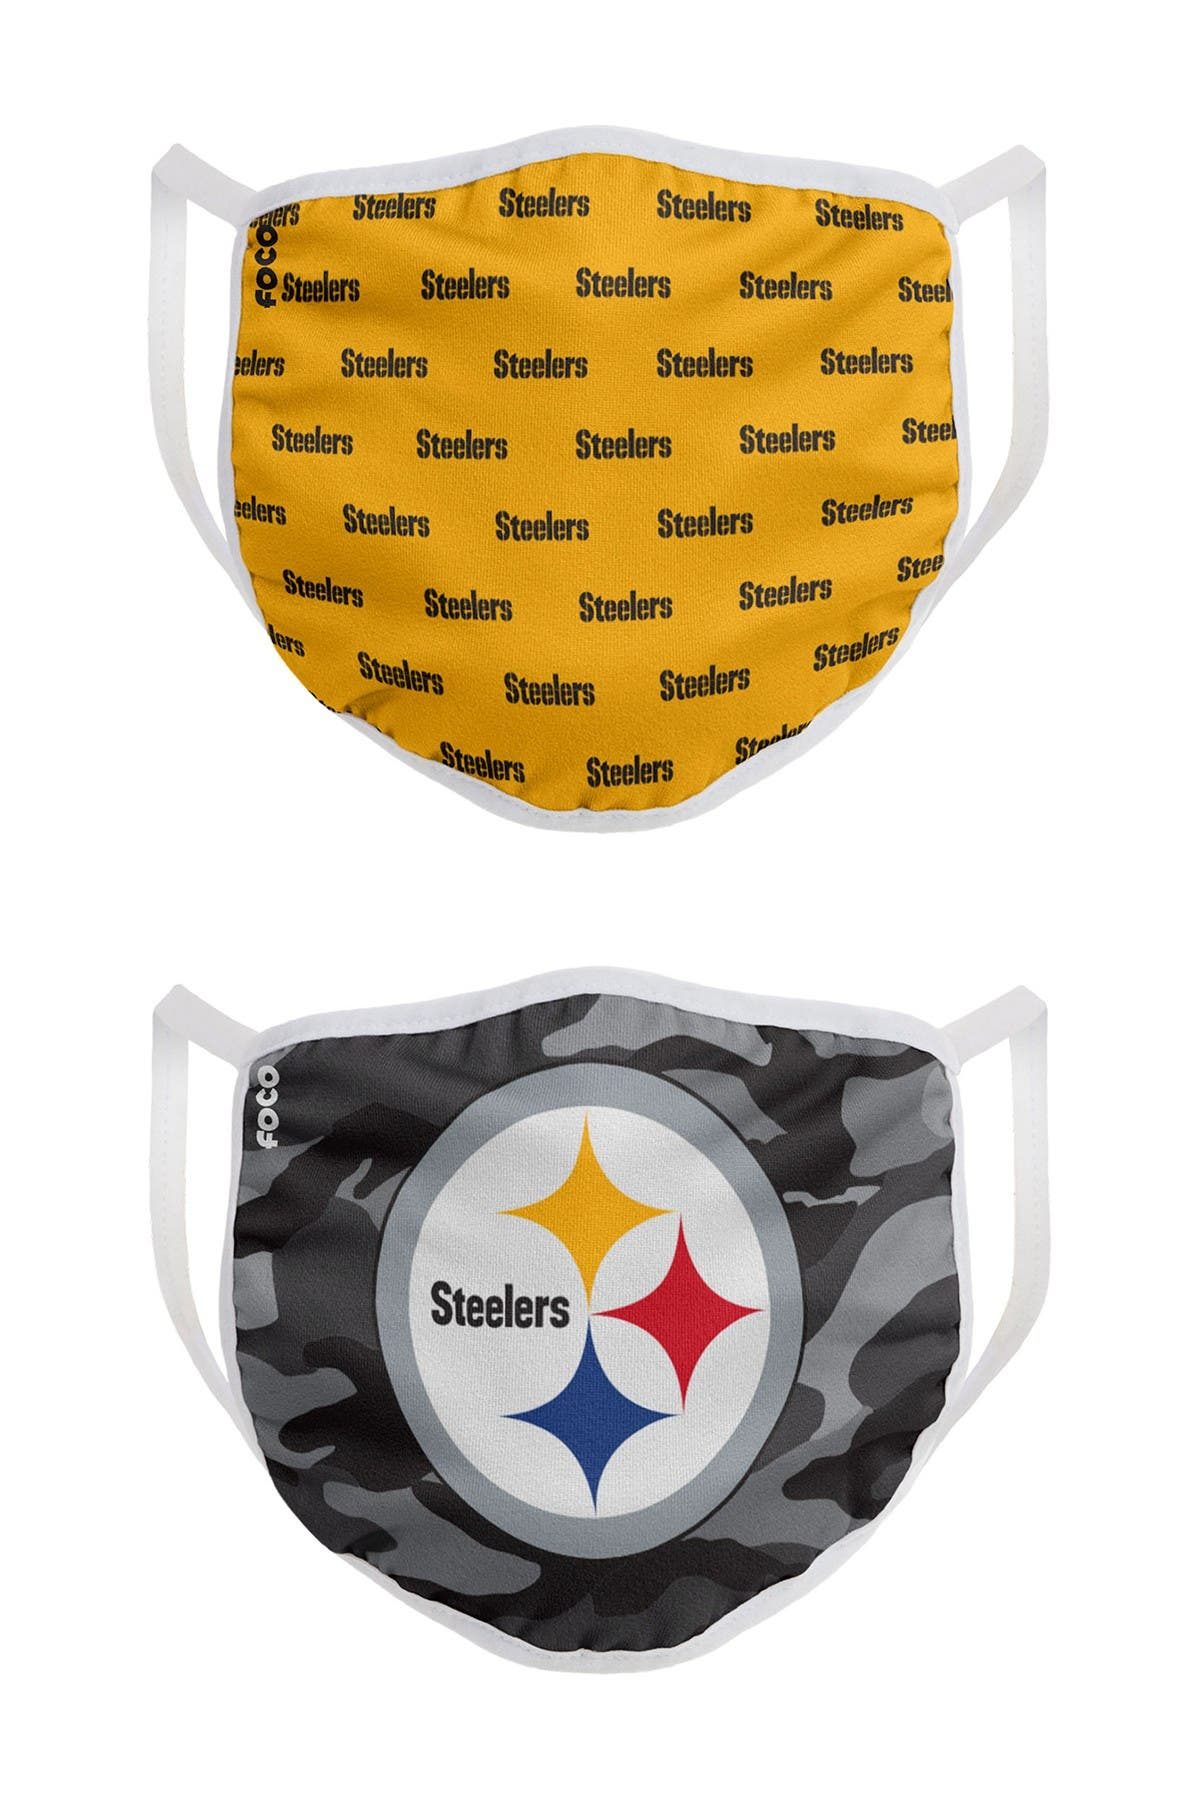 Image of FOCO NFL Pittsburgh Steelers Clutch Printed Face Cover - Pack of 2